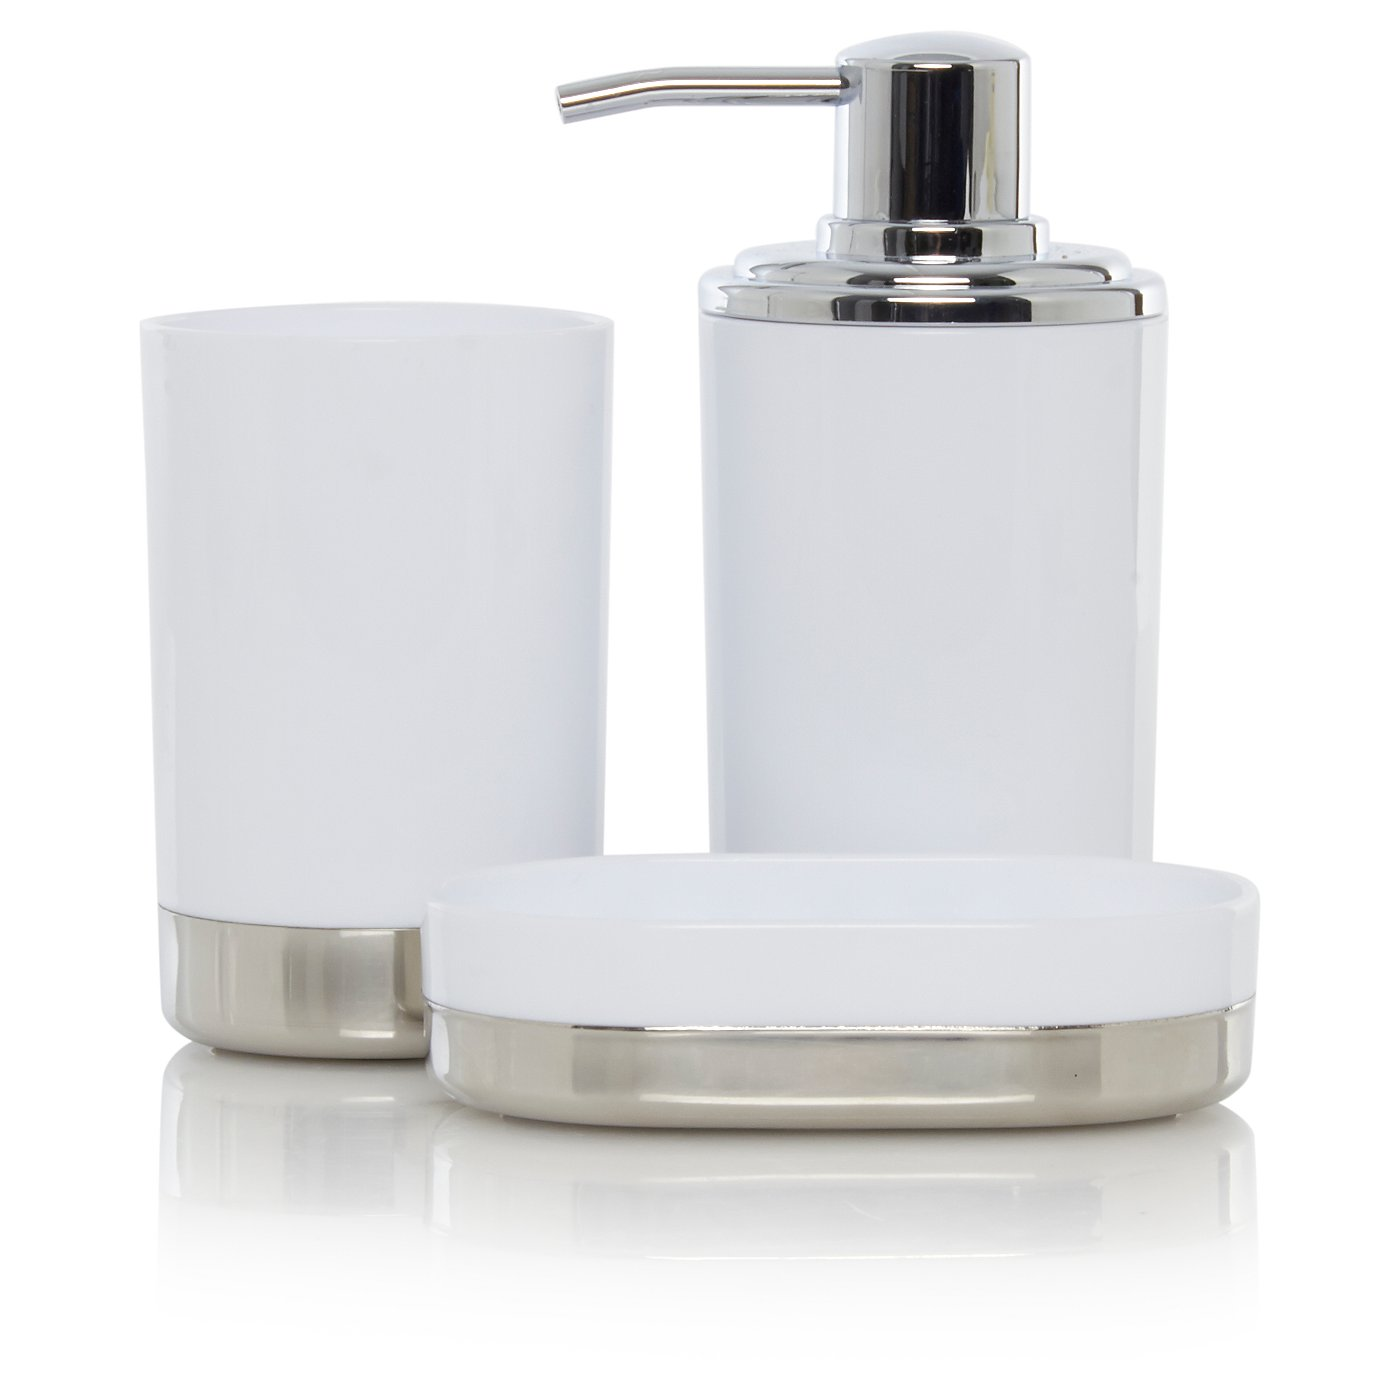 White & Chrome Bath Accessories Range | Bathroom Accessories ...